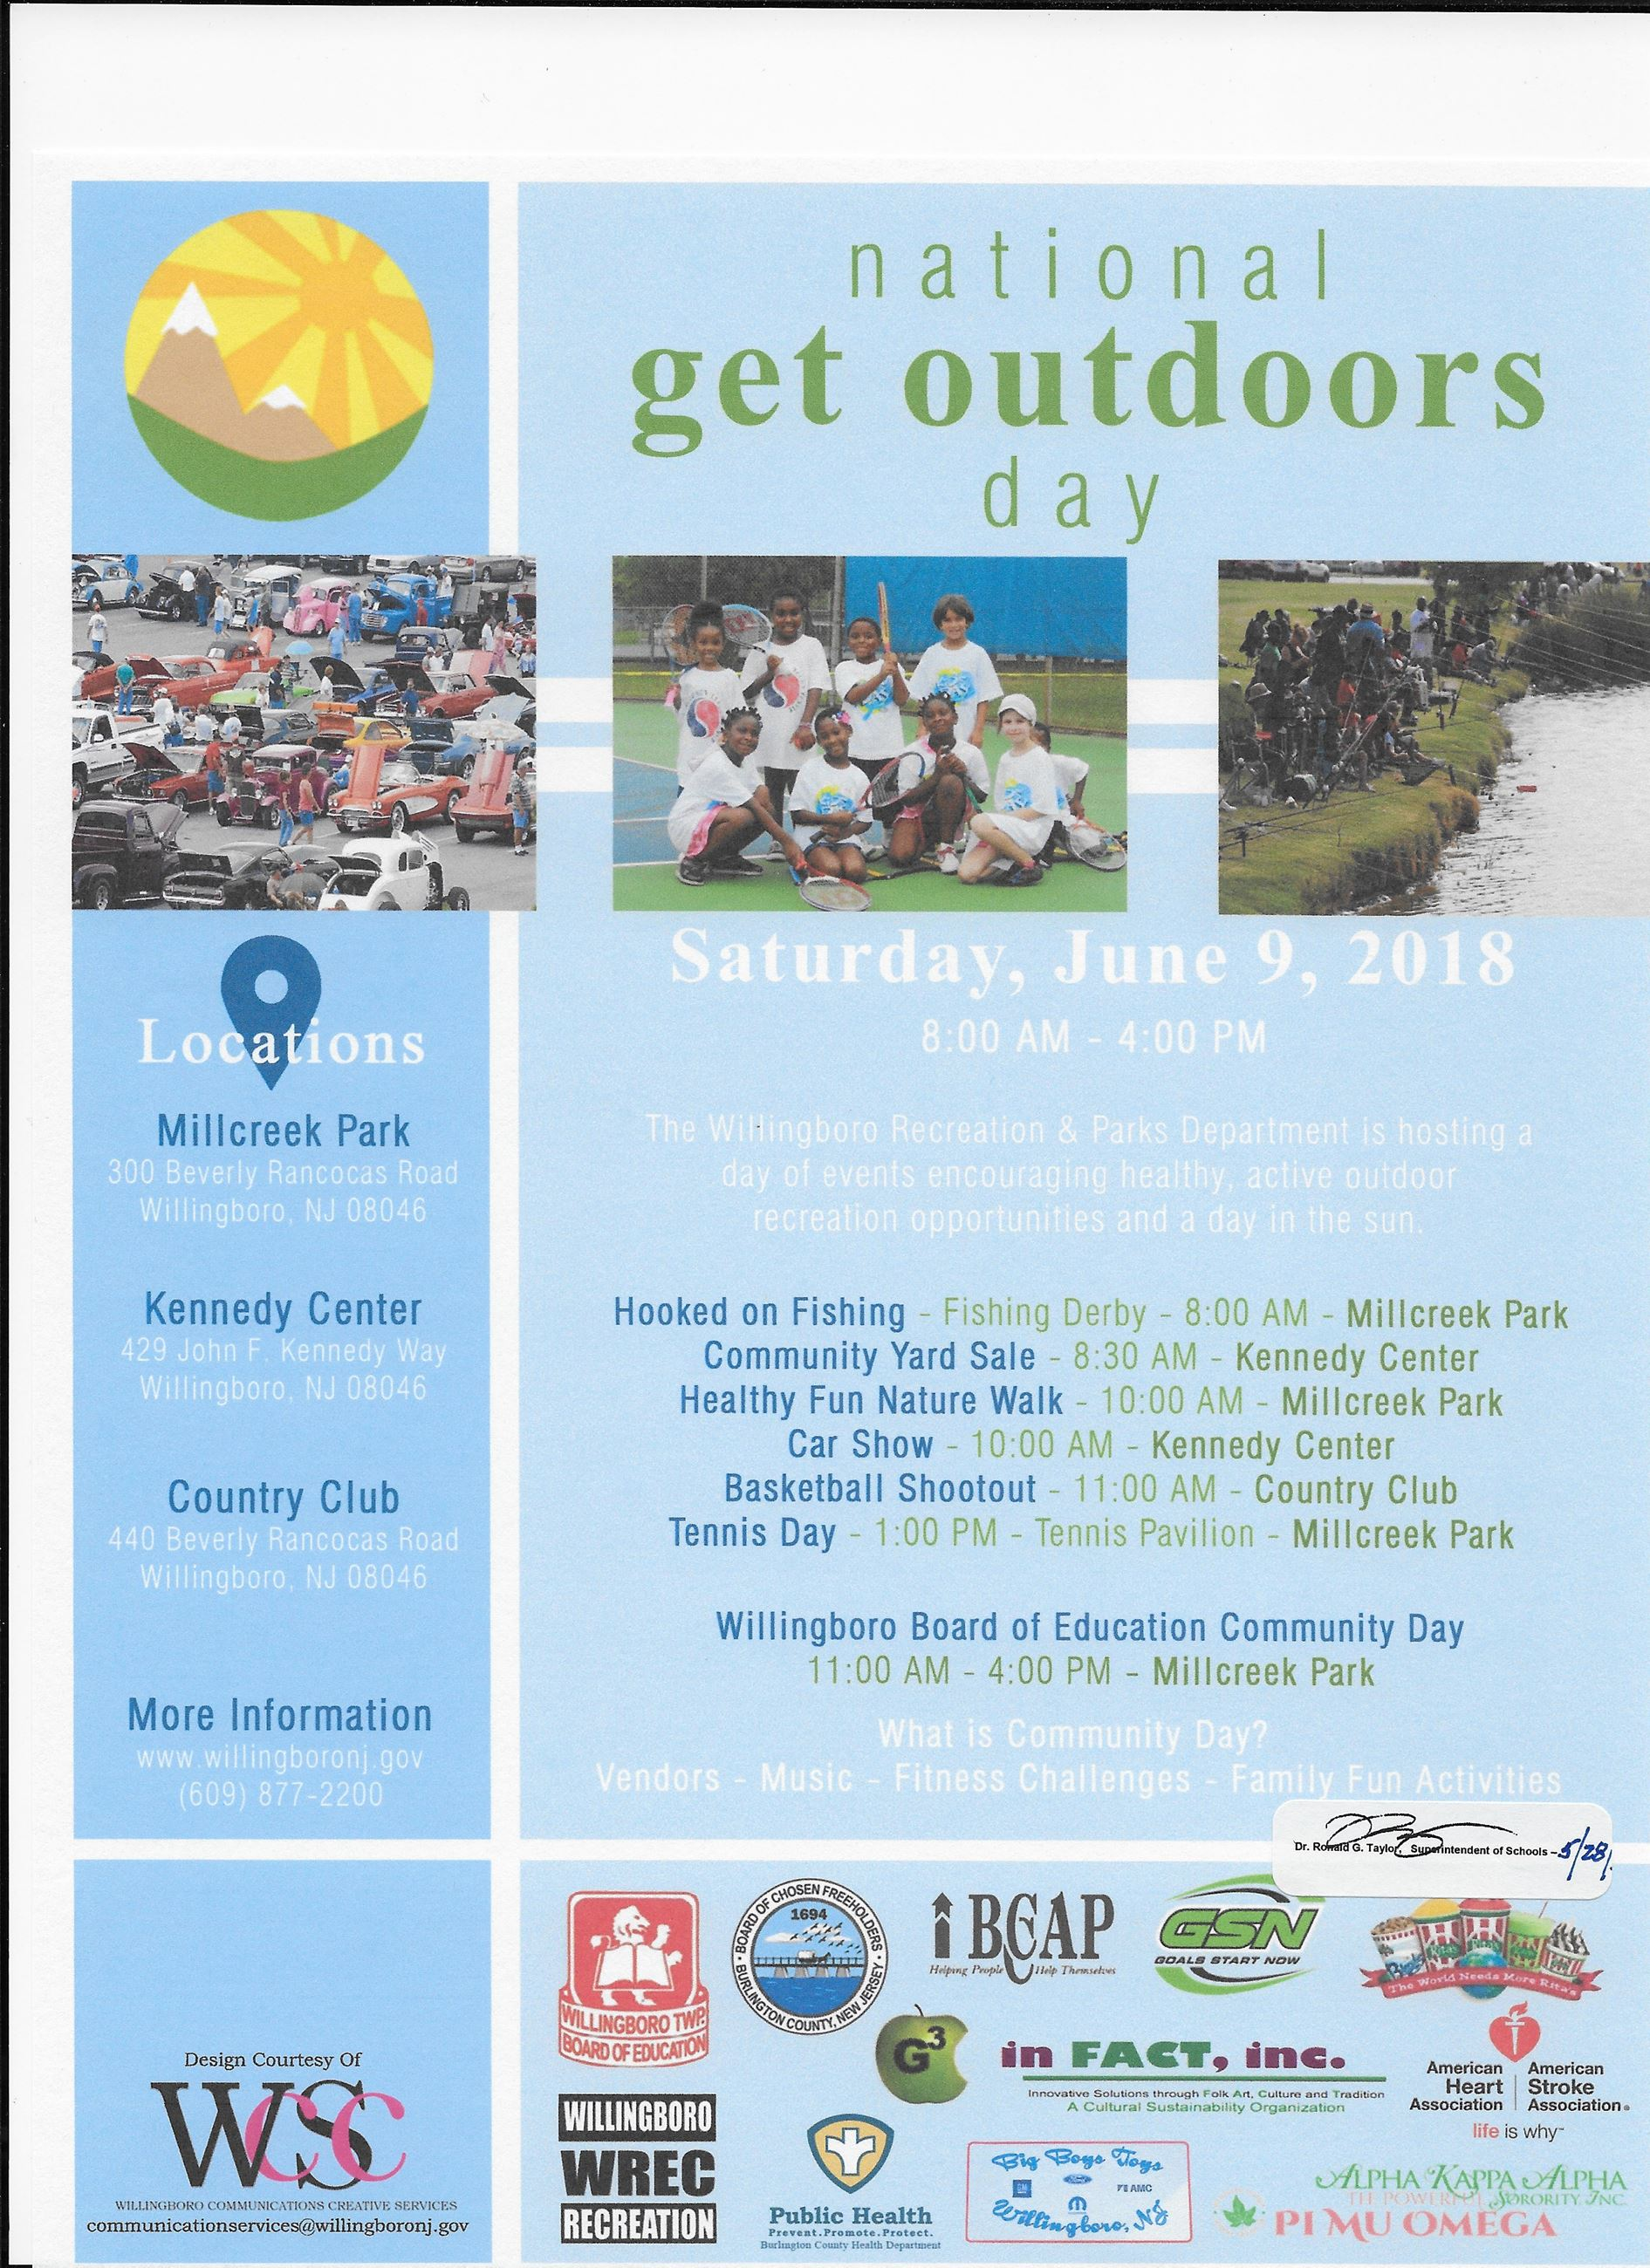 Get Outdoors Day 2018 Flyer for calendar